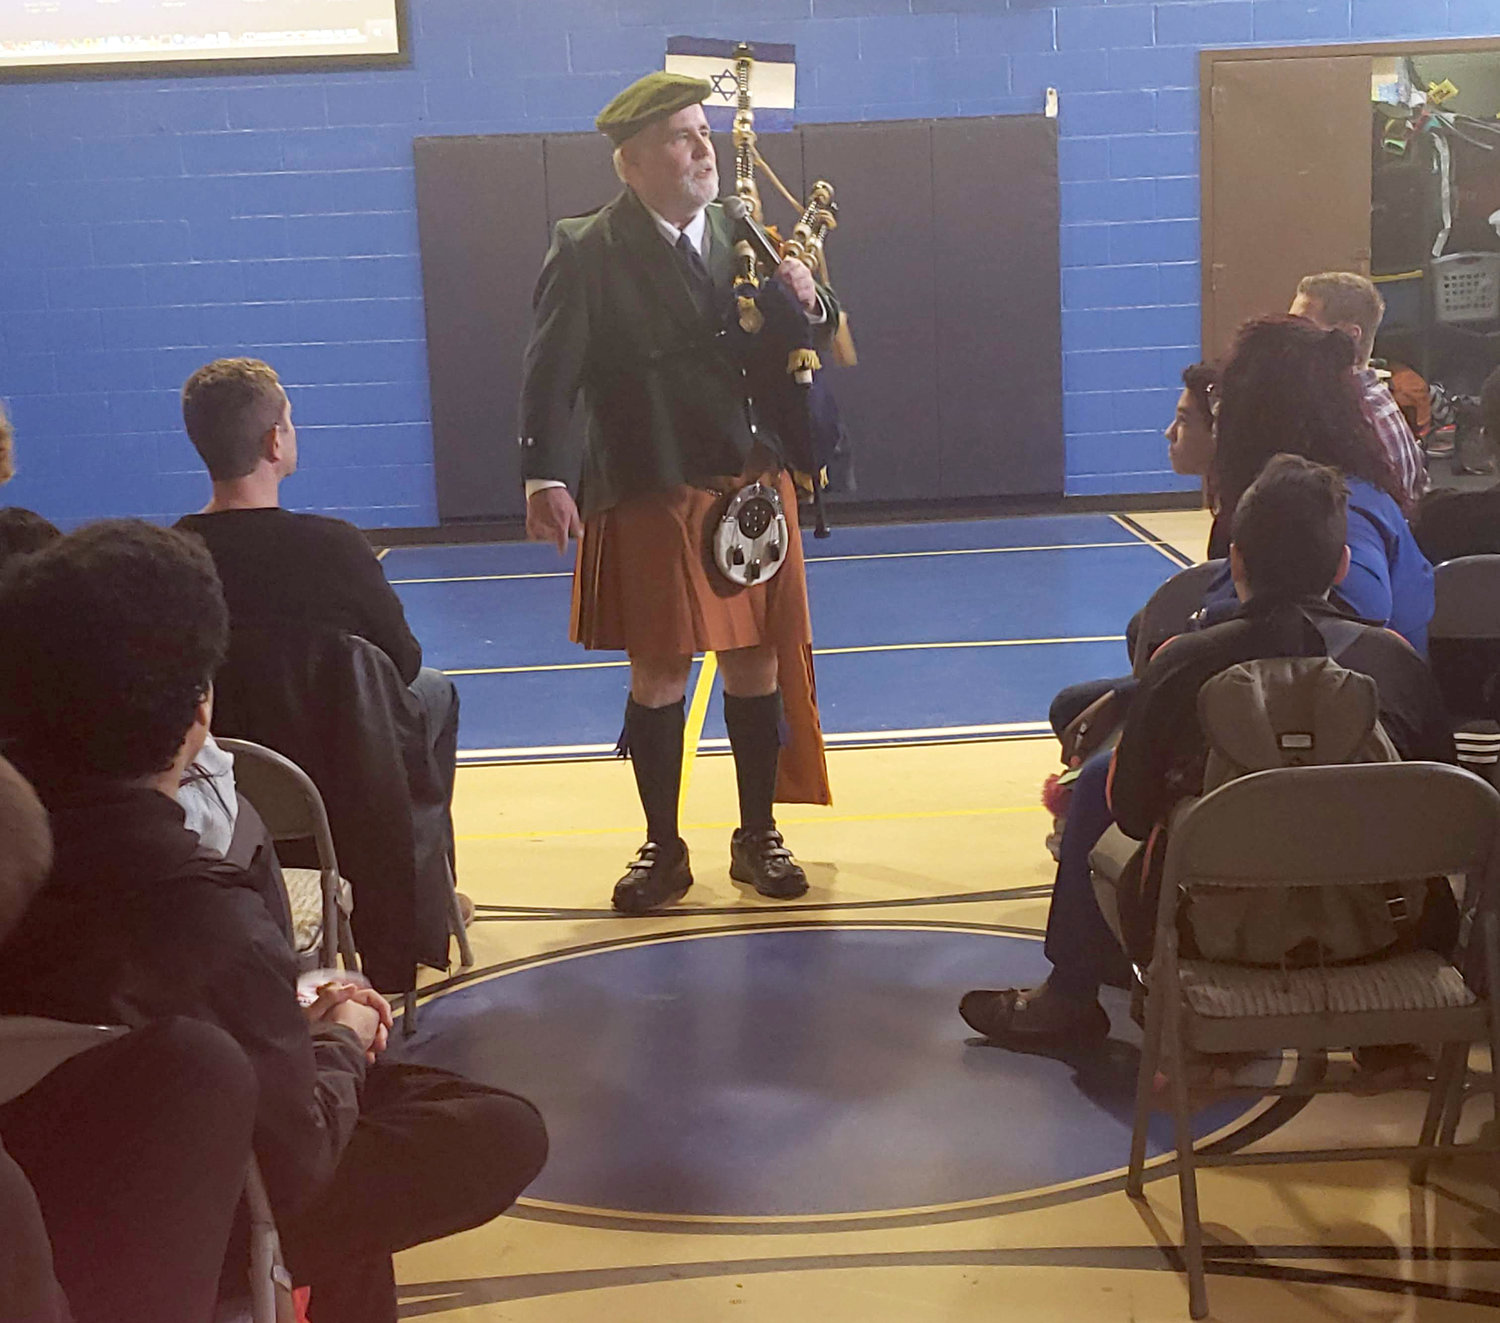 Kellenberg Memorial High School's music instructor, Robert Lynch explained the history of his kilt and sporran to the Woodward Children's Center students in between the songs he played on his bagpipe on April 30.